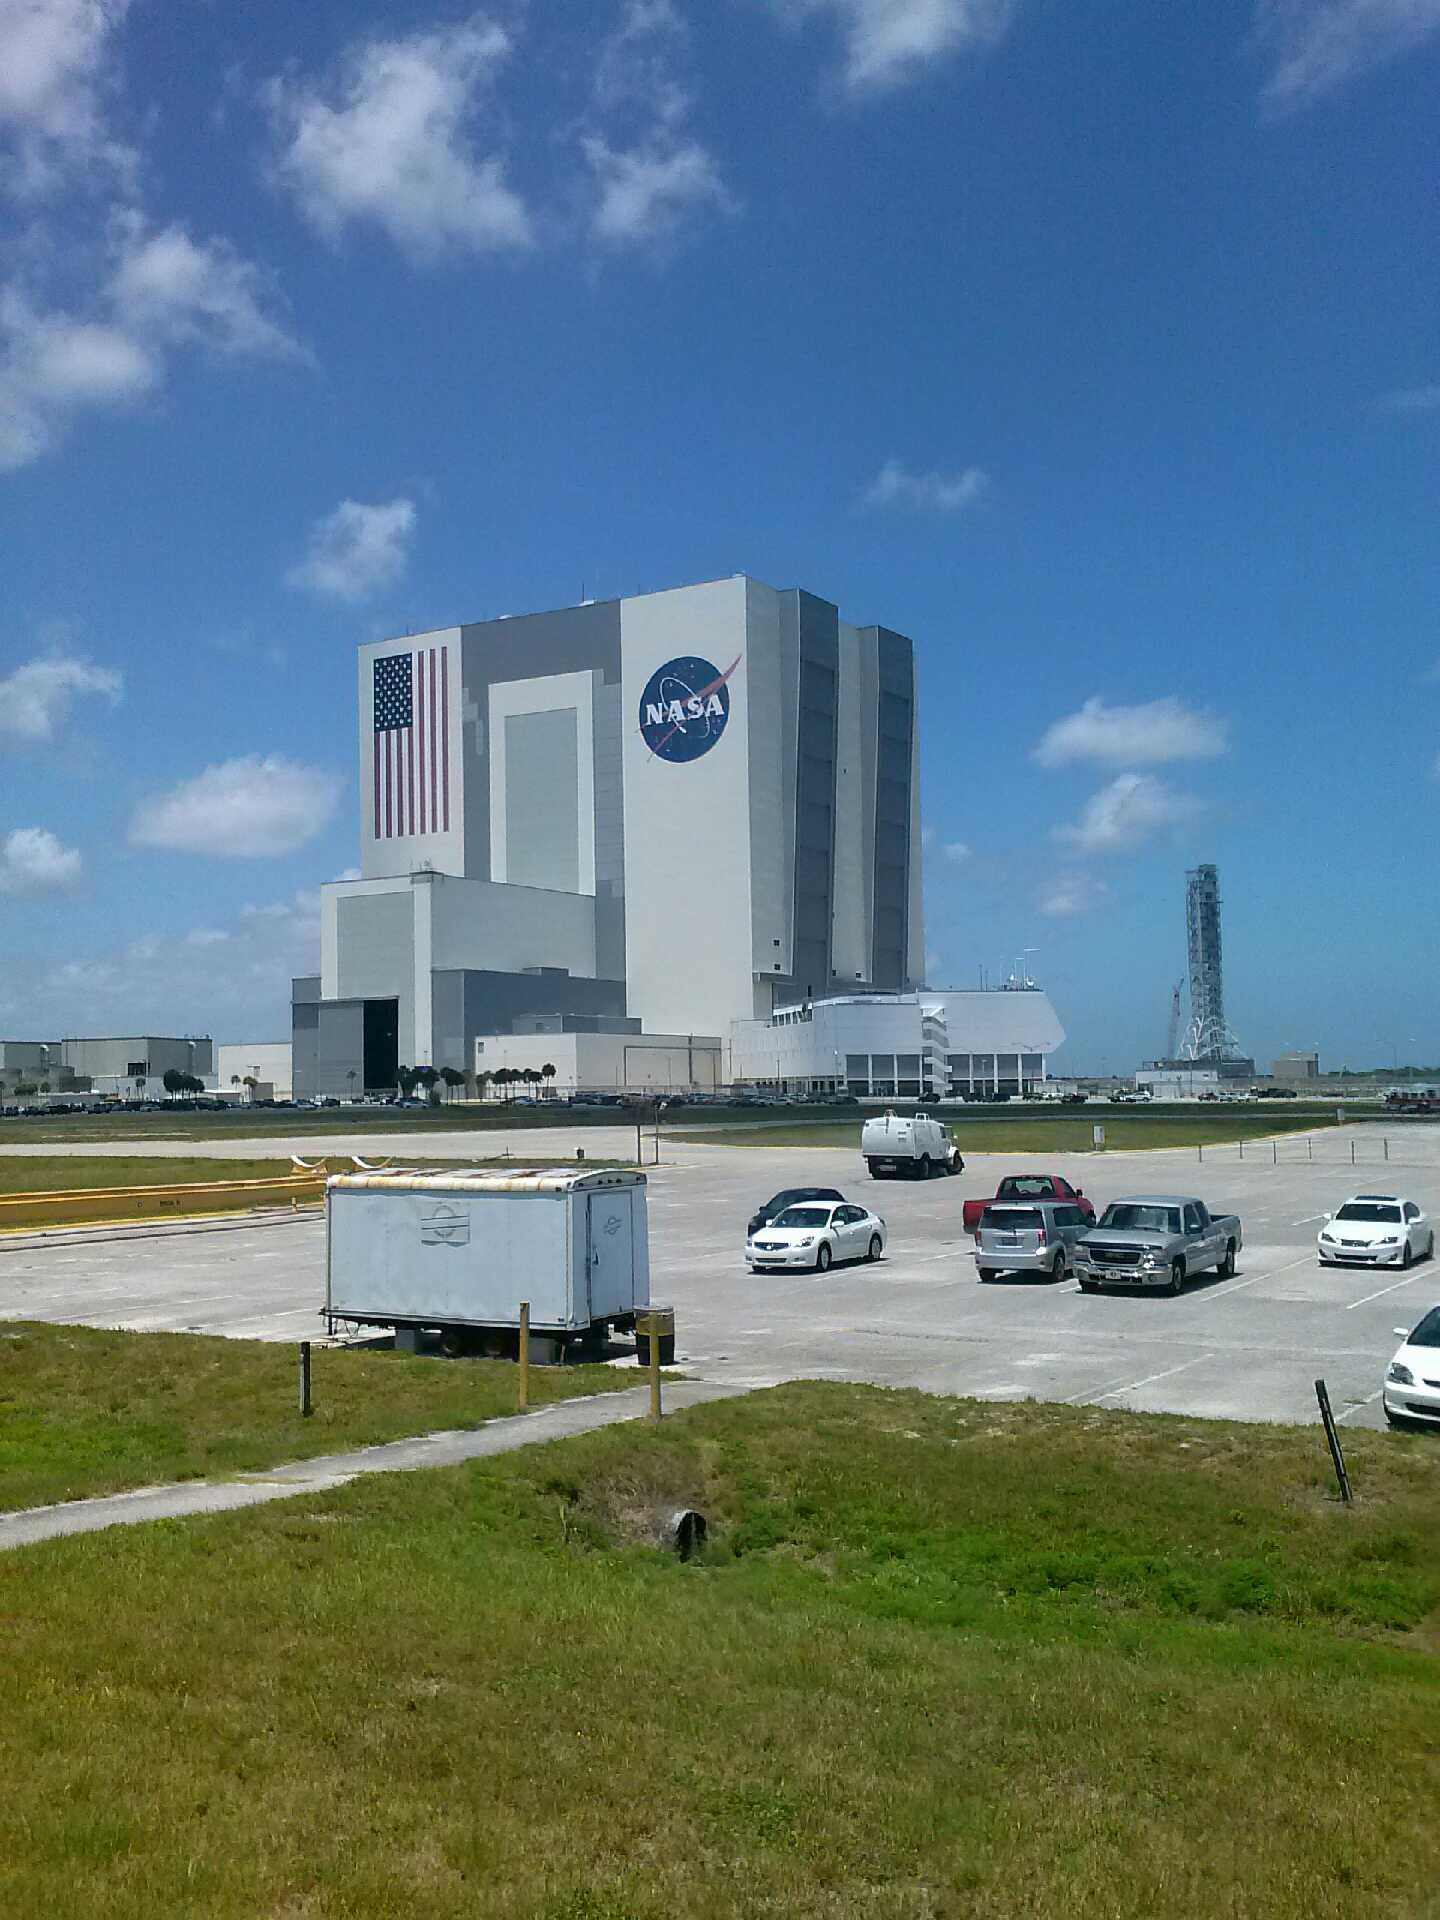 Our office for the day. #nasa #kiehlsinspace http://t.co/vMjY22eql1